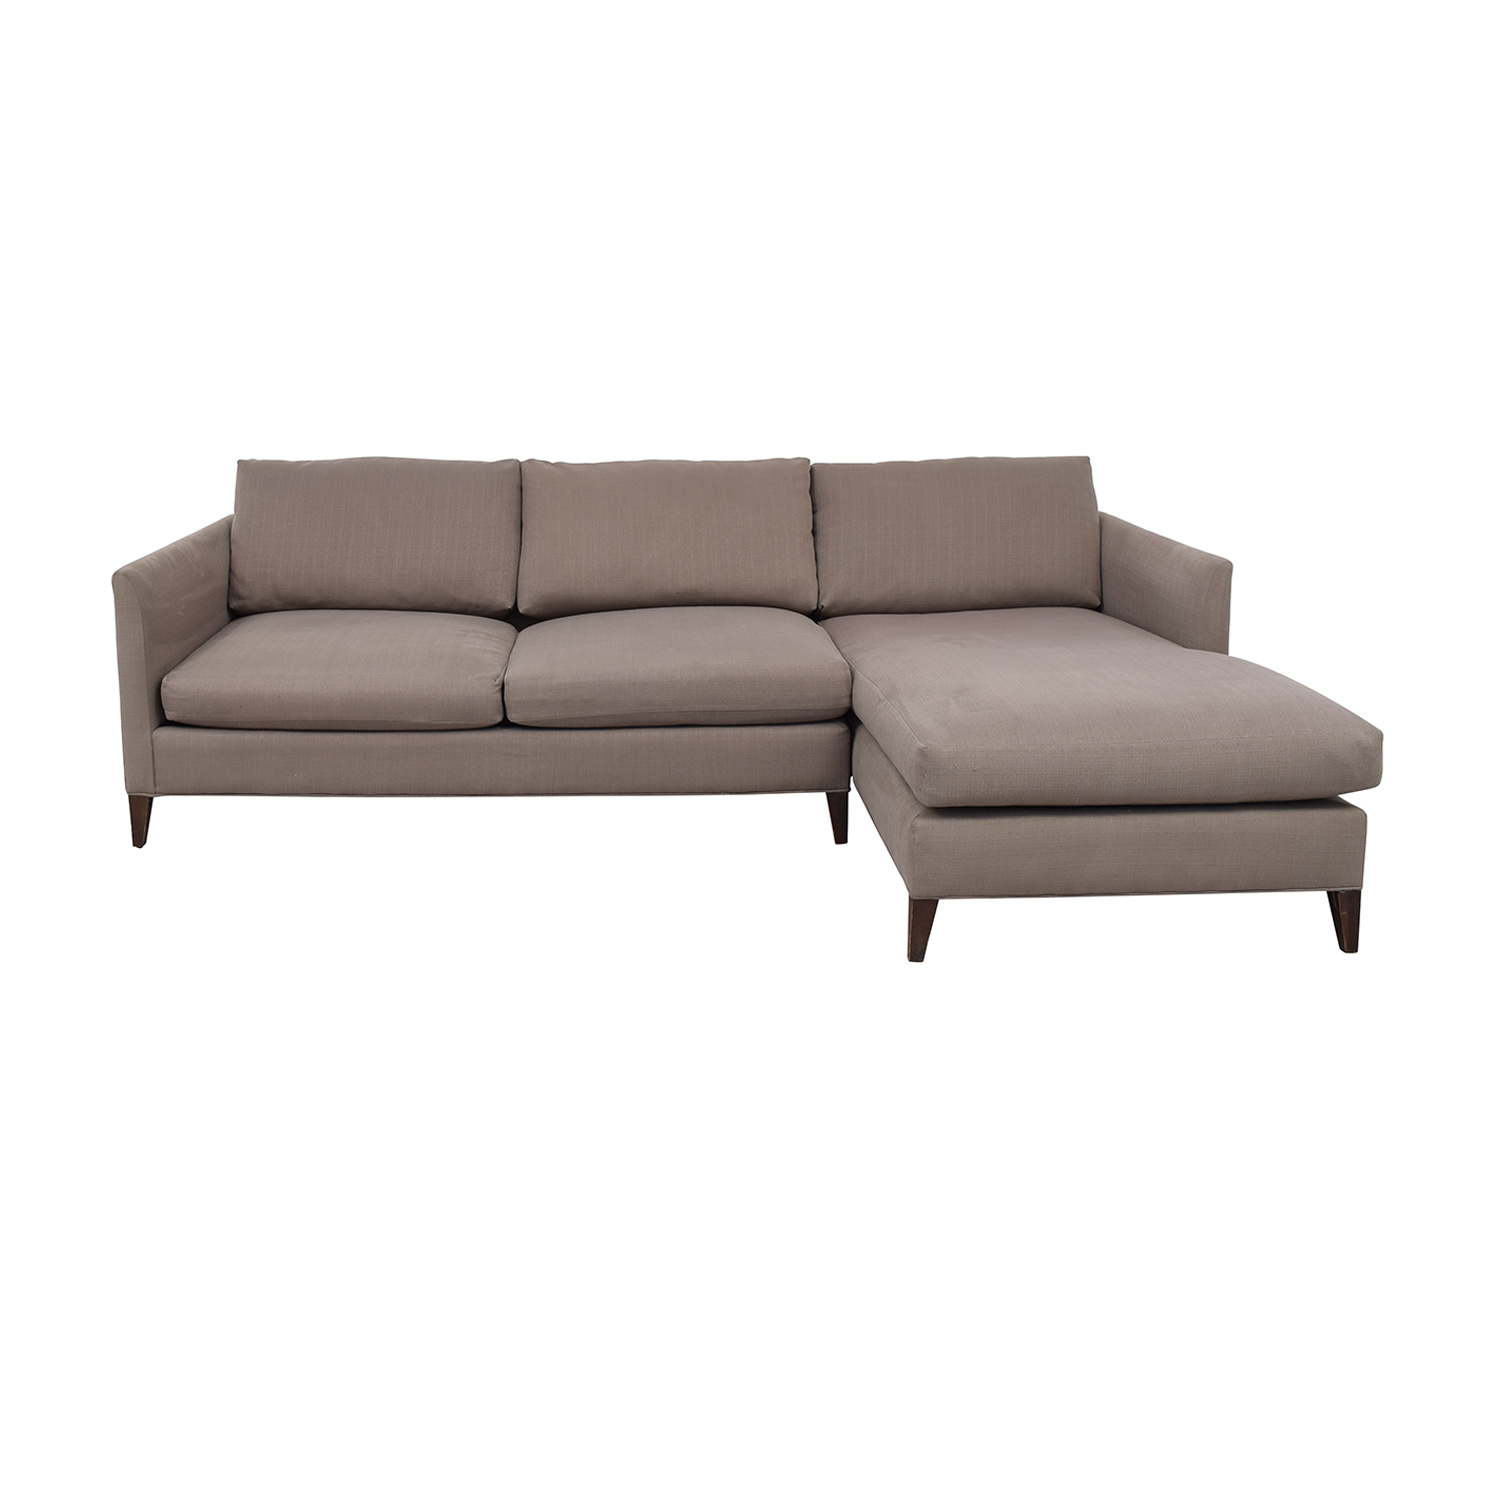 shop Crate & Barrel Grey Chaise Sectional Crate & Barrel Sofas